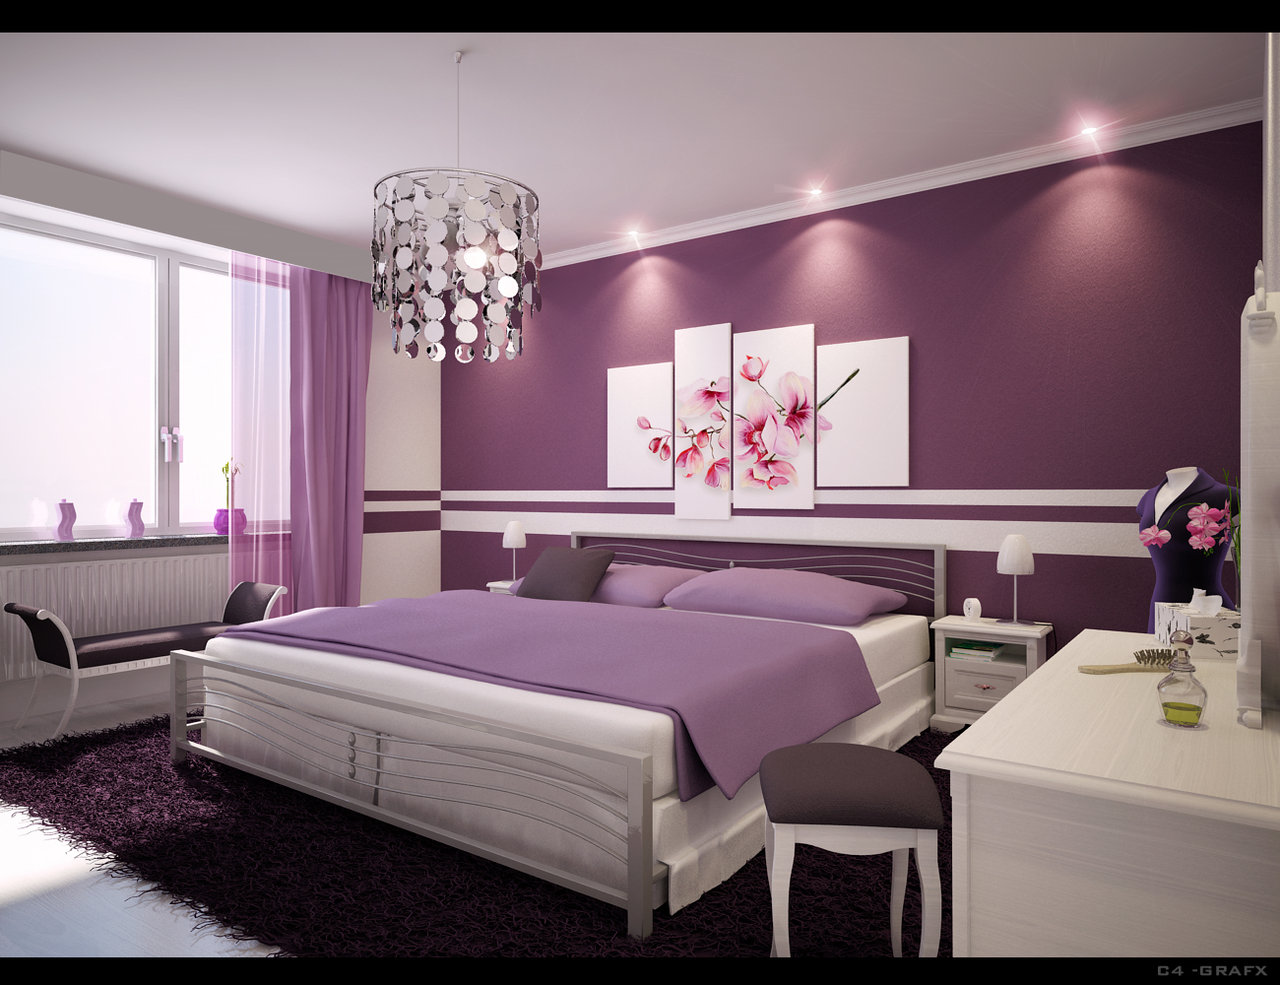 Home interior designs simple ideas for purple room design for Innovative bedroom designs